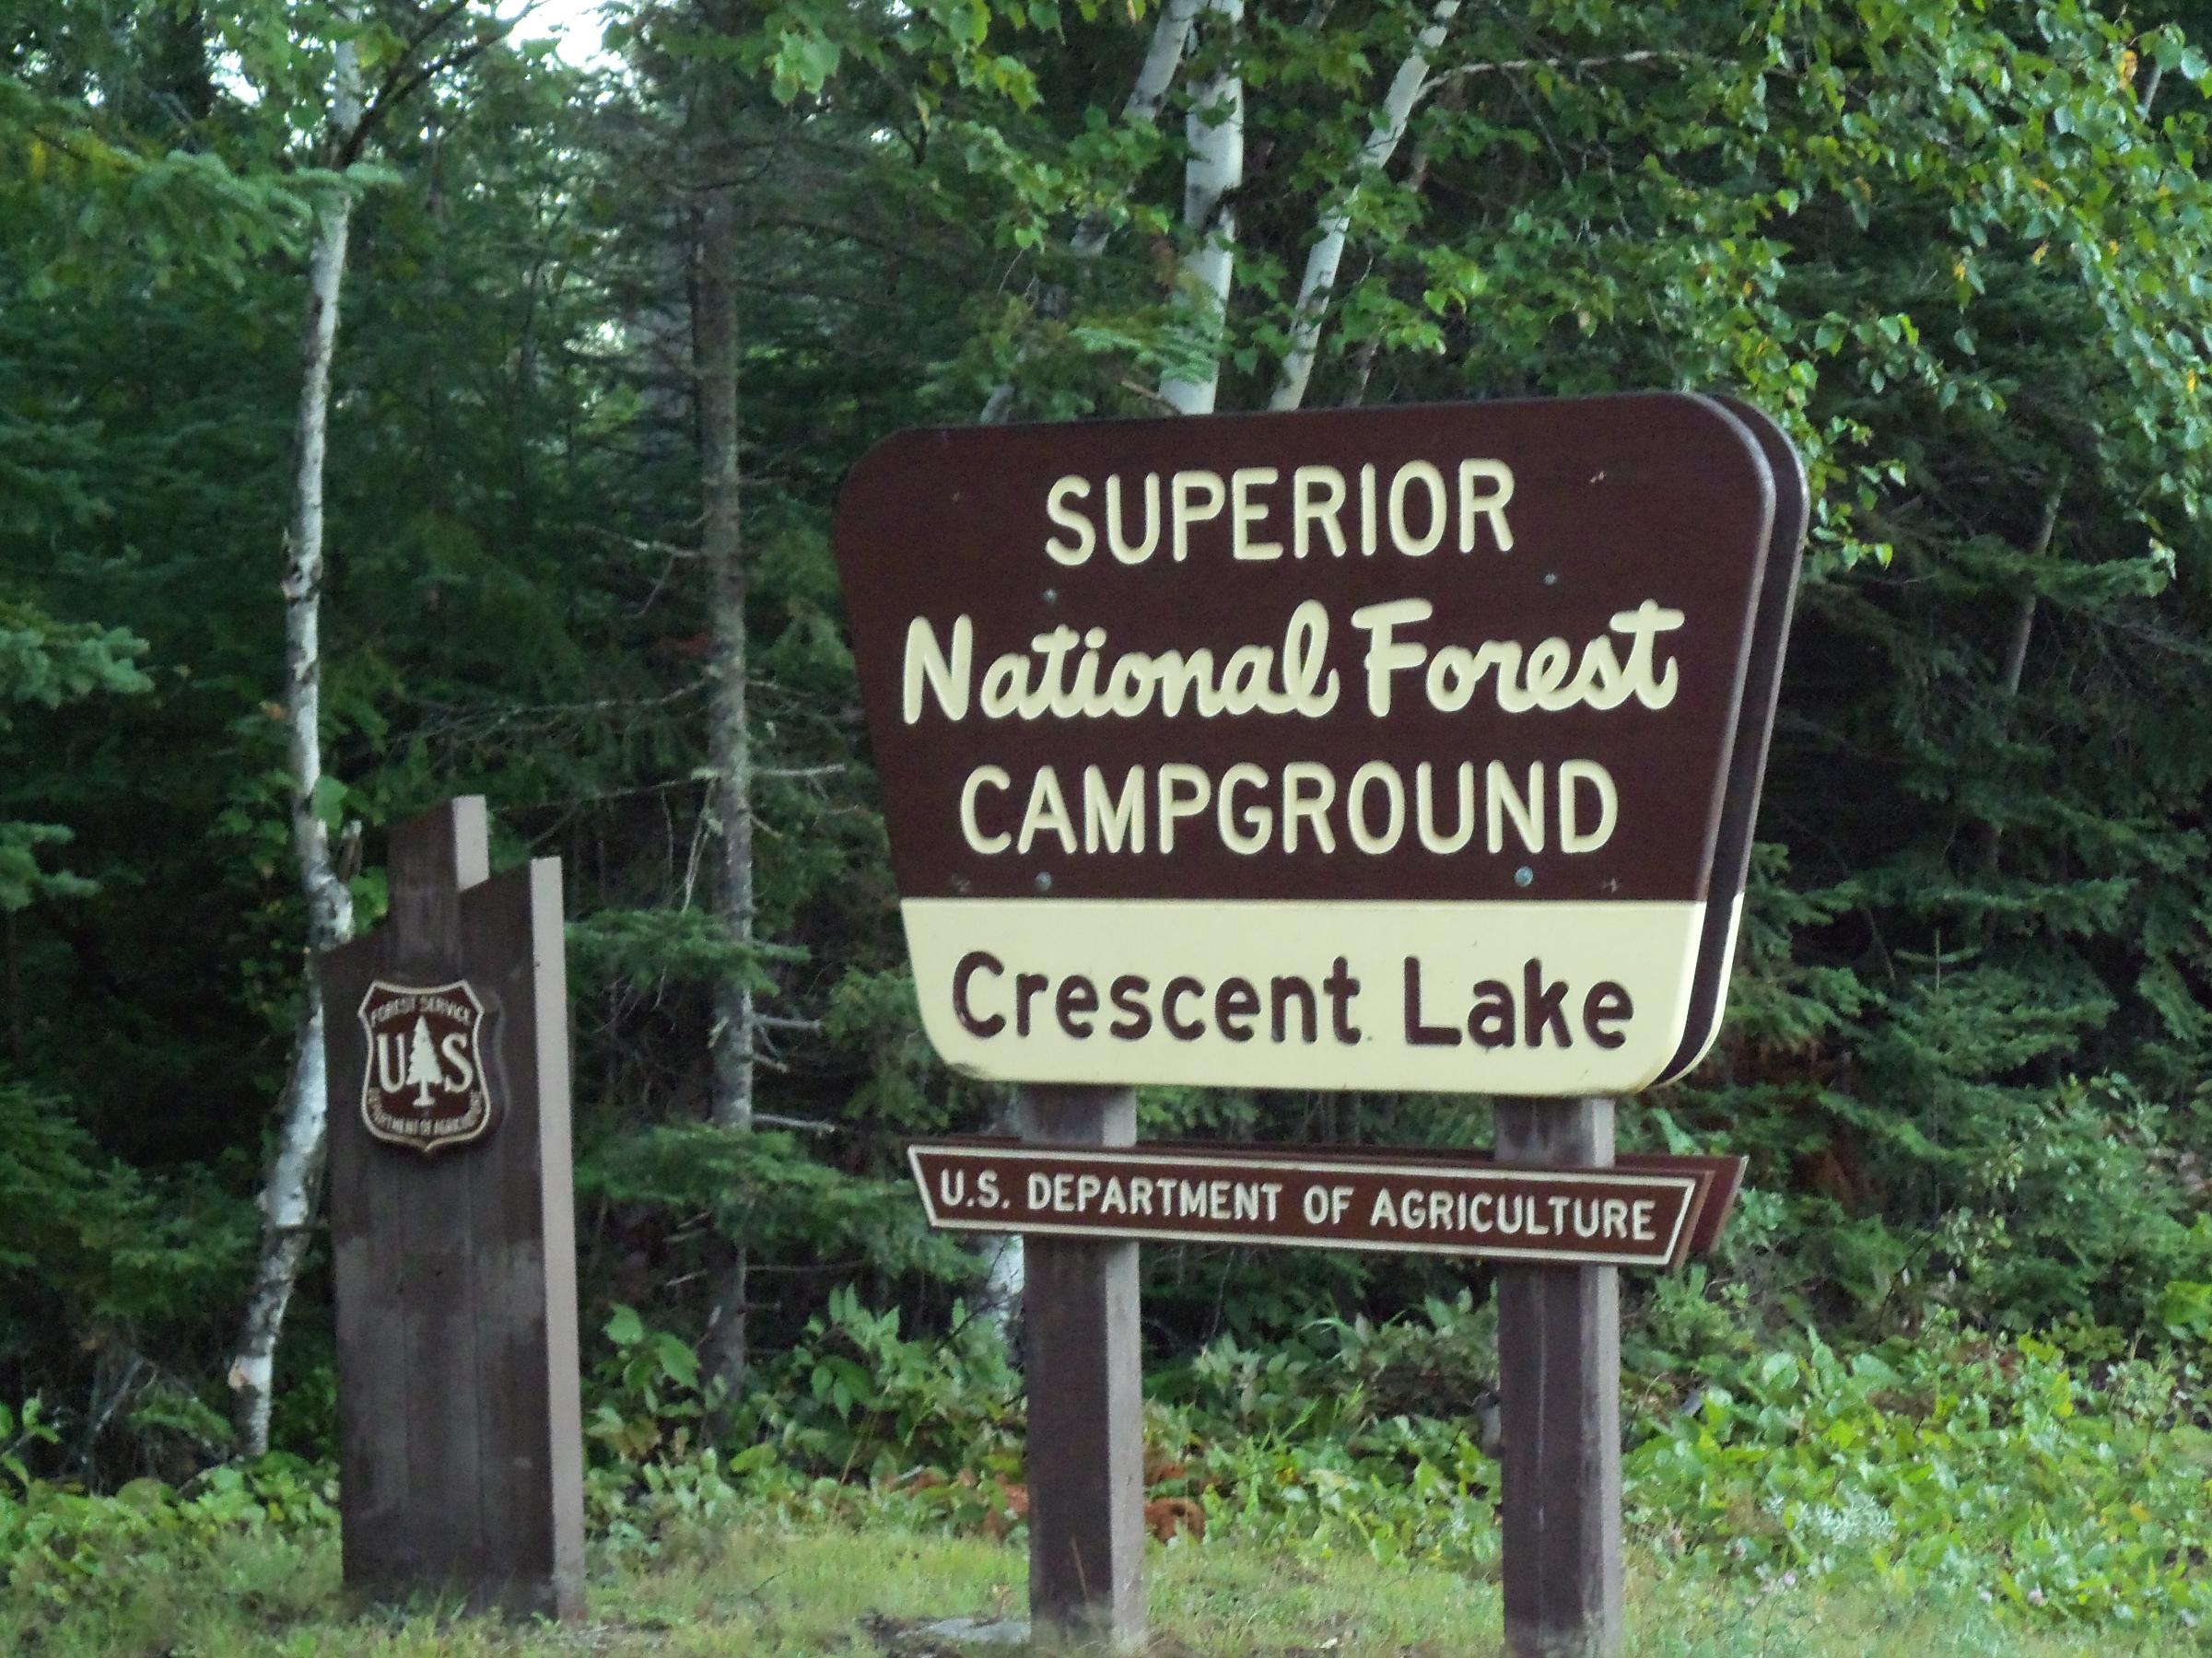 BWCA Brule Lake Entry - Campsites on Entry Point? Boundary